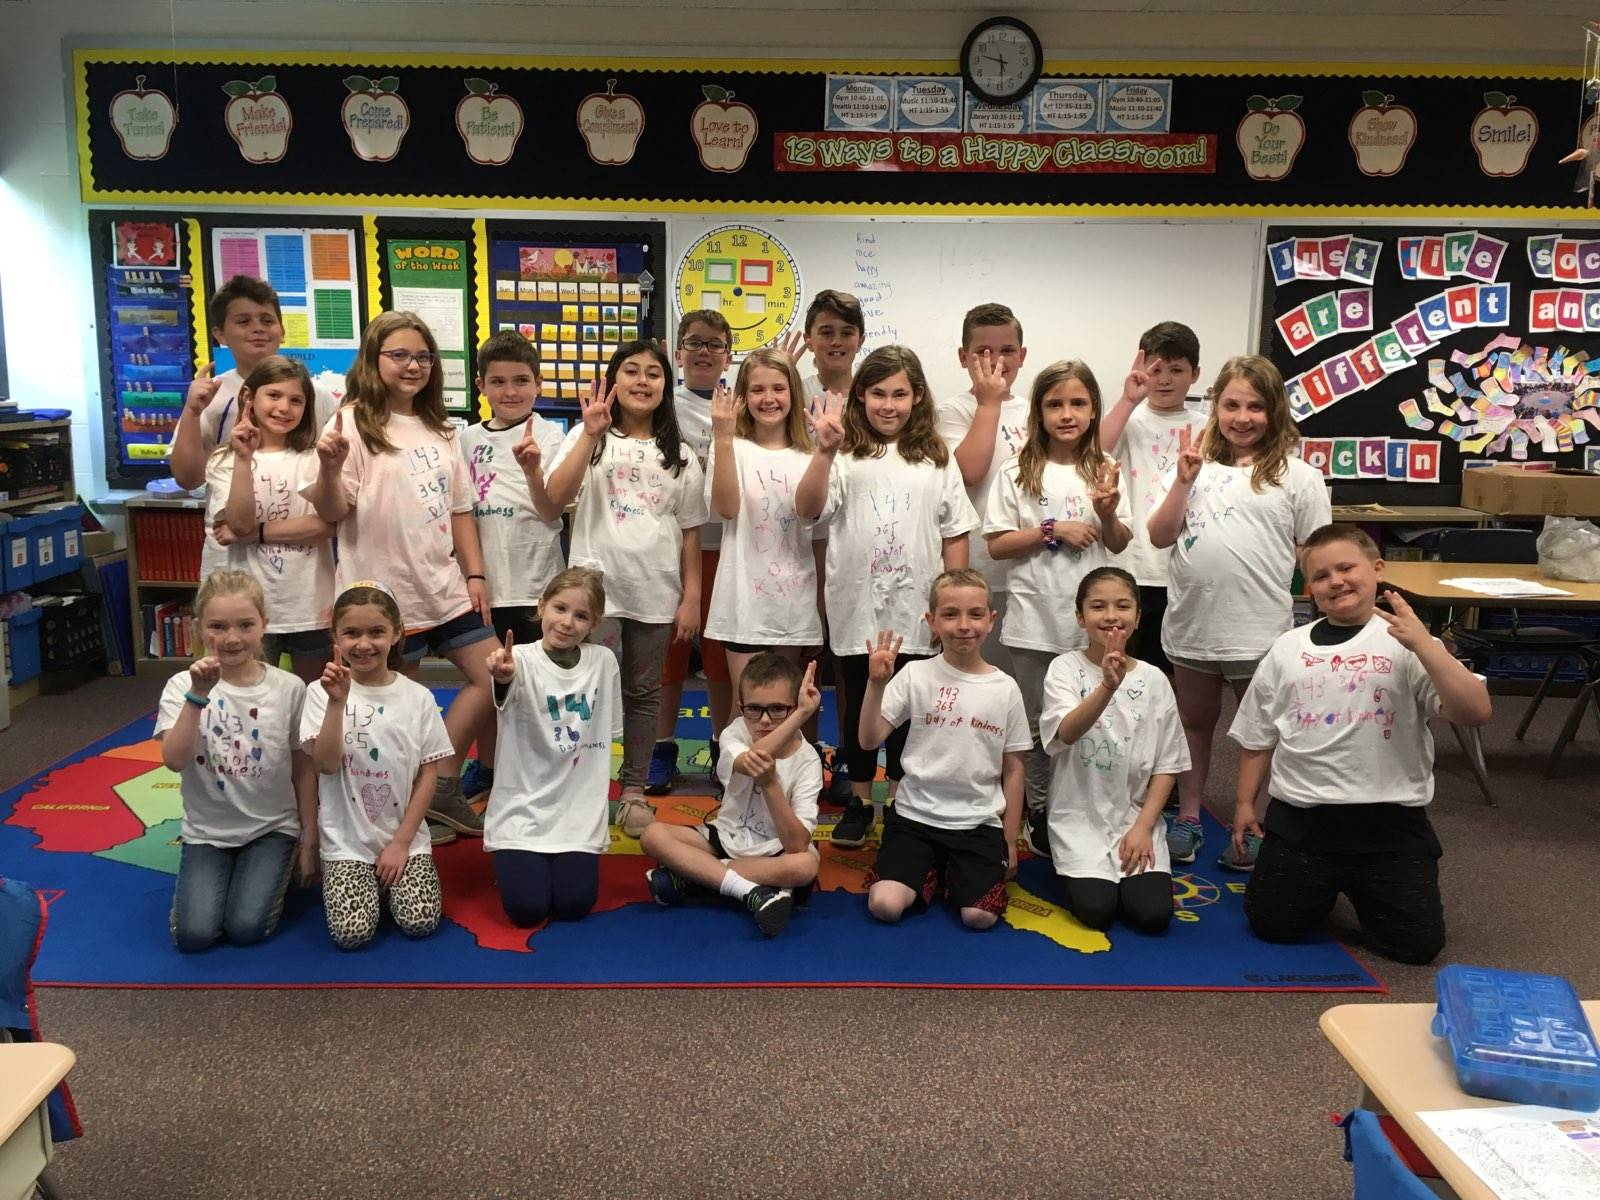 Students wearing their 143 Day t-shirts